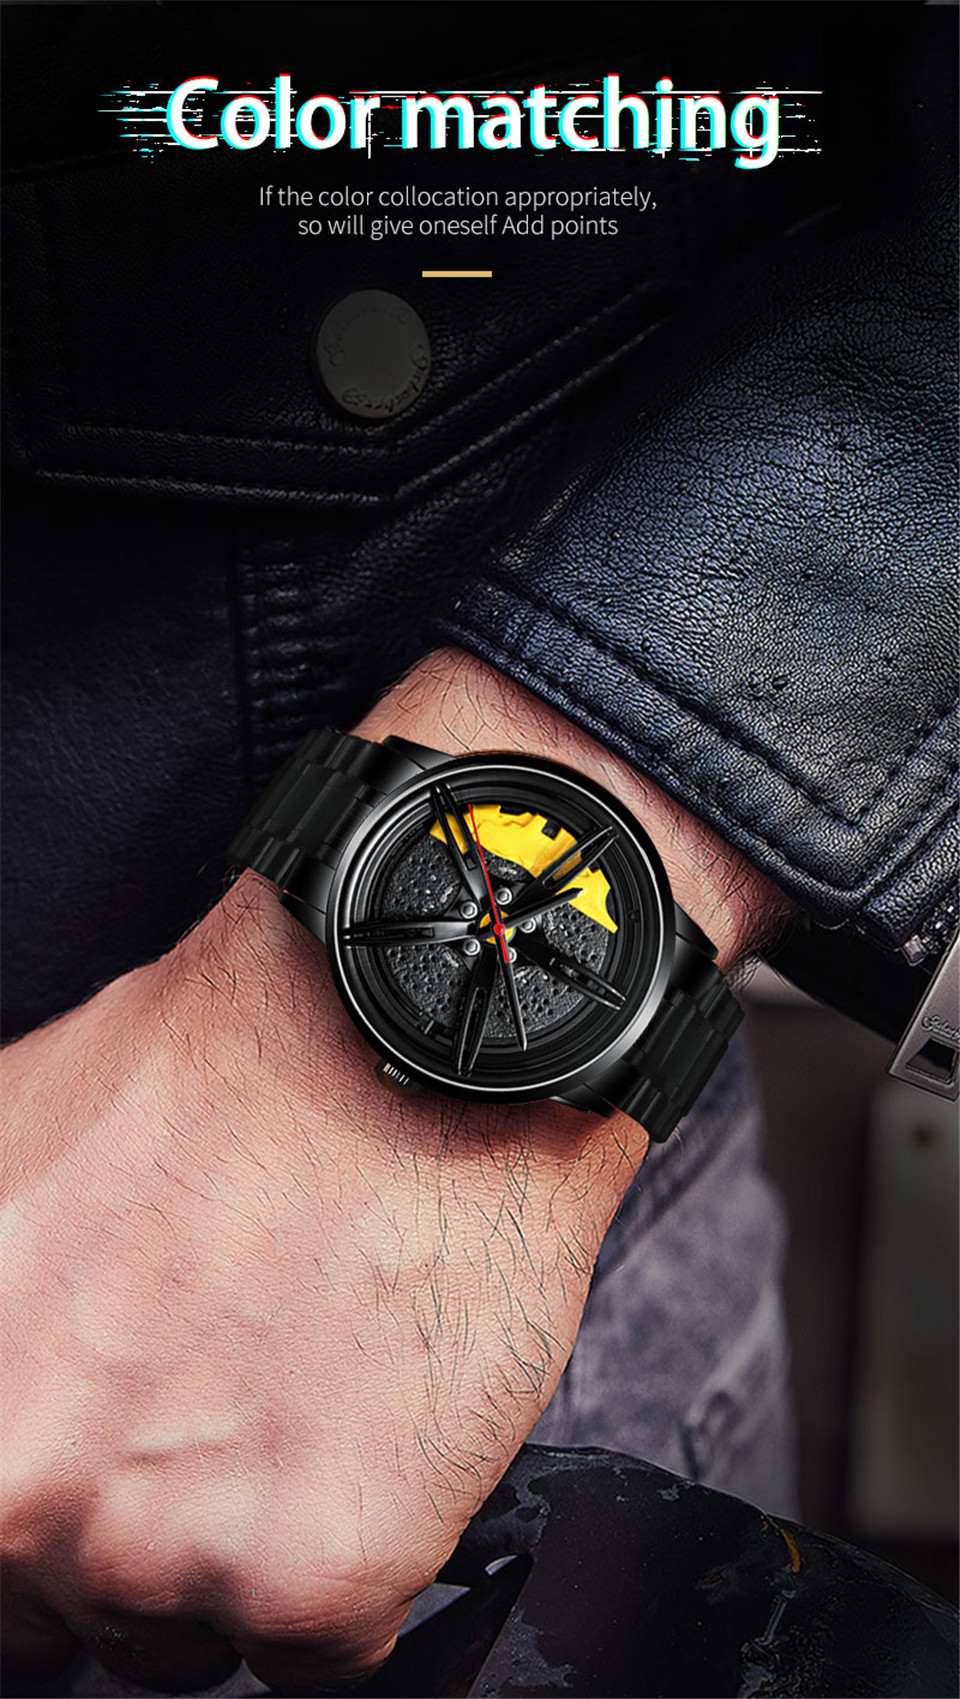 Hf4fa818f376a464a87c108558ae25b7ao 2020 Nektom Men Watch Sports Car Watch Wheel Rim Design Car